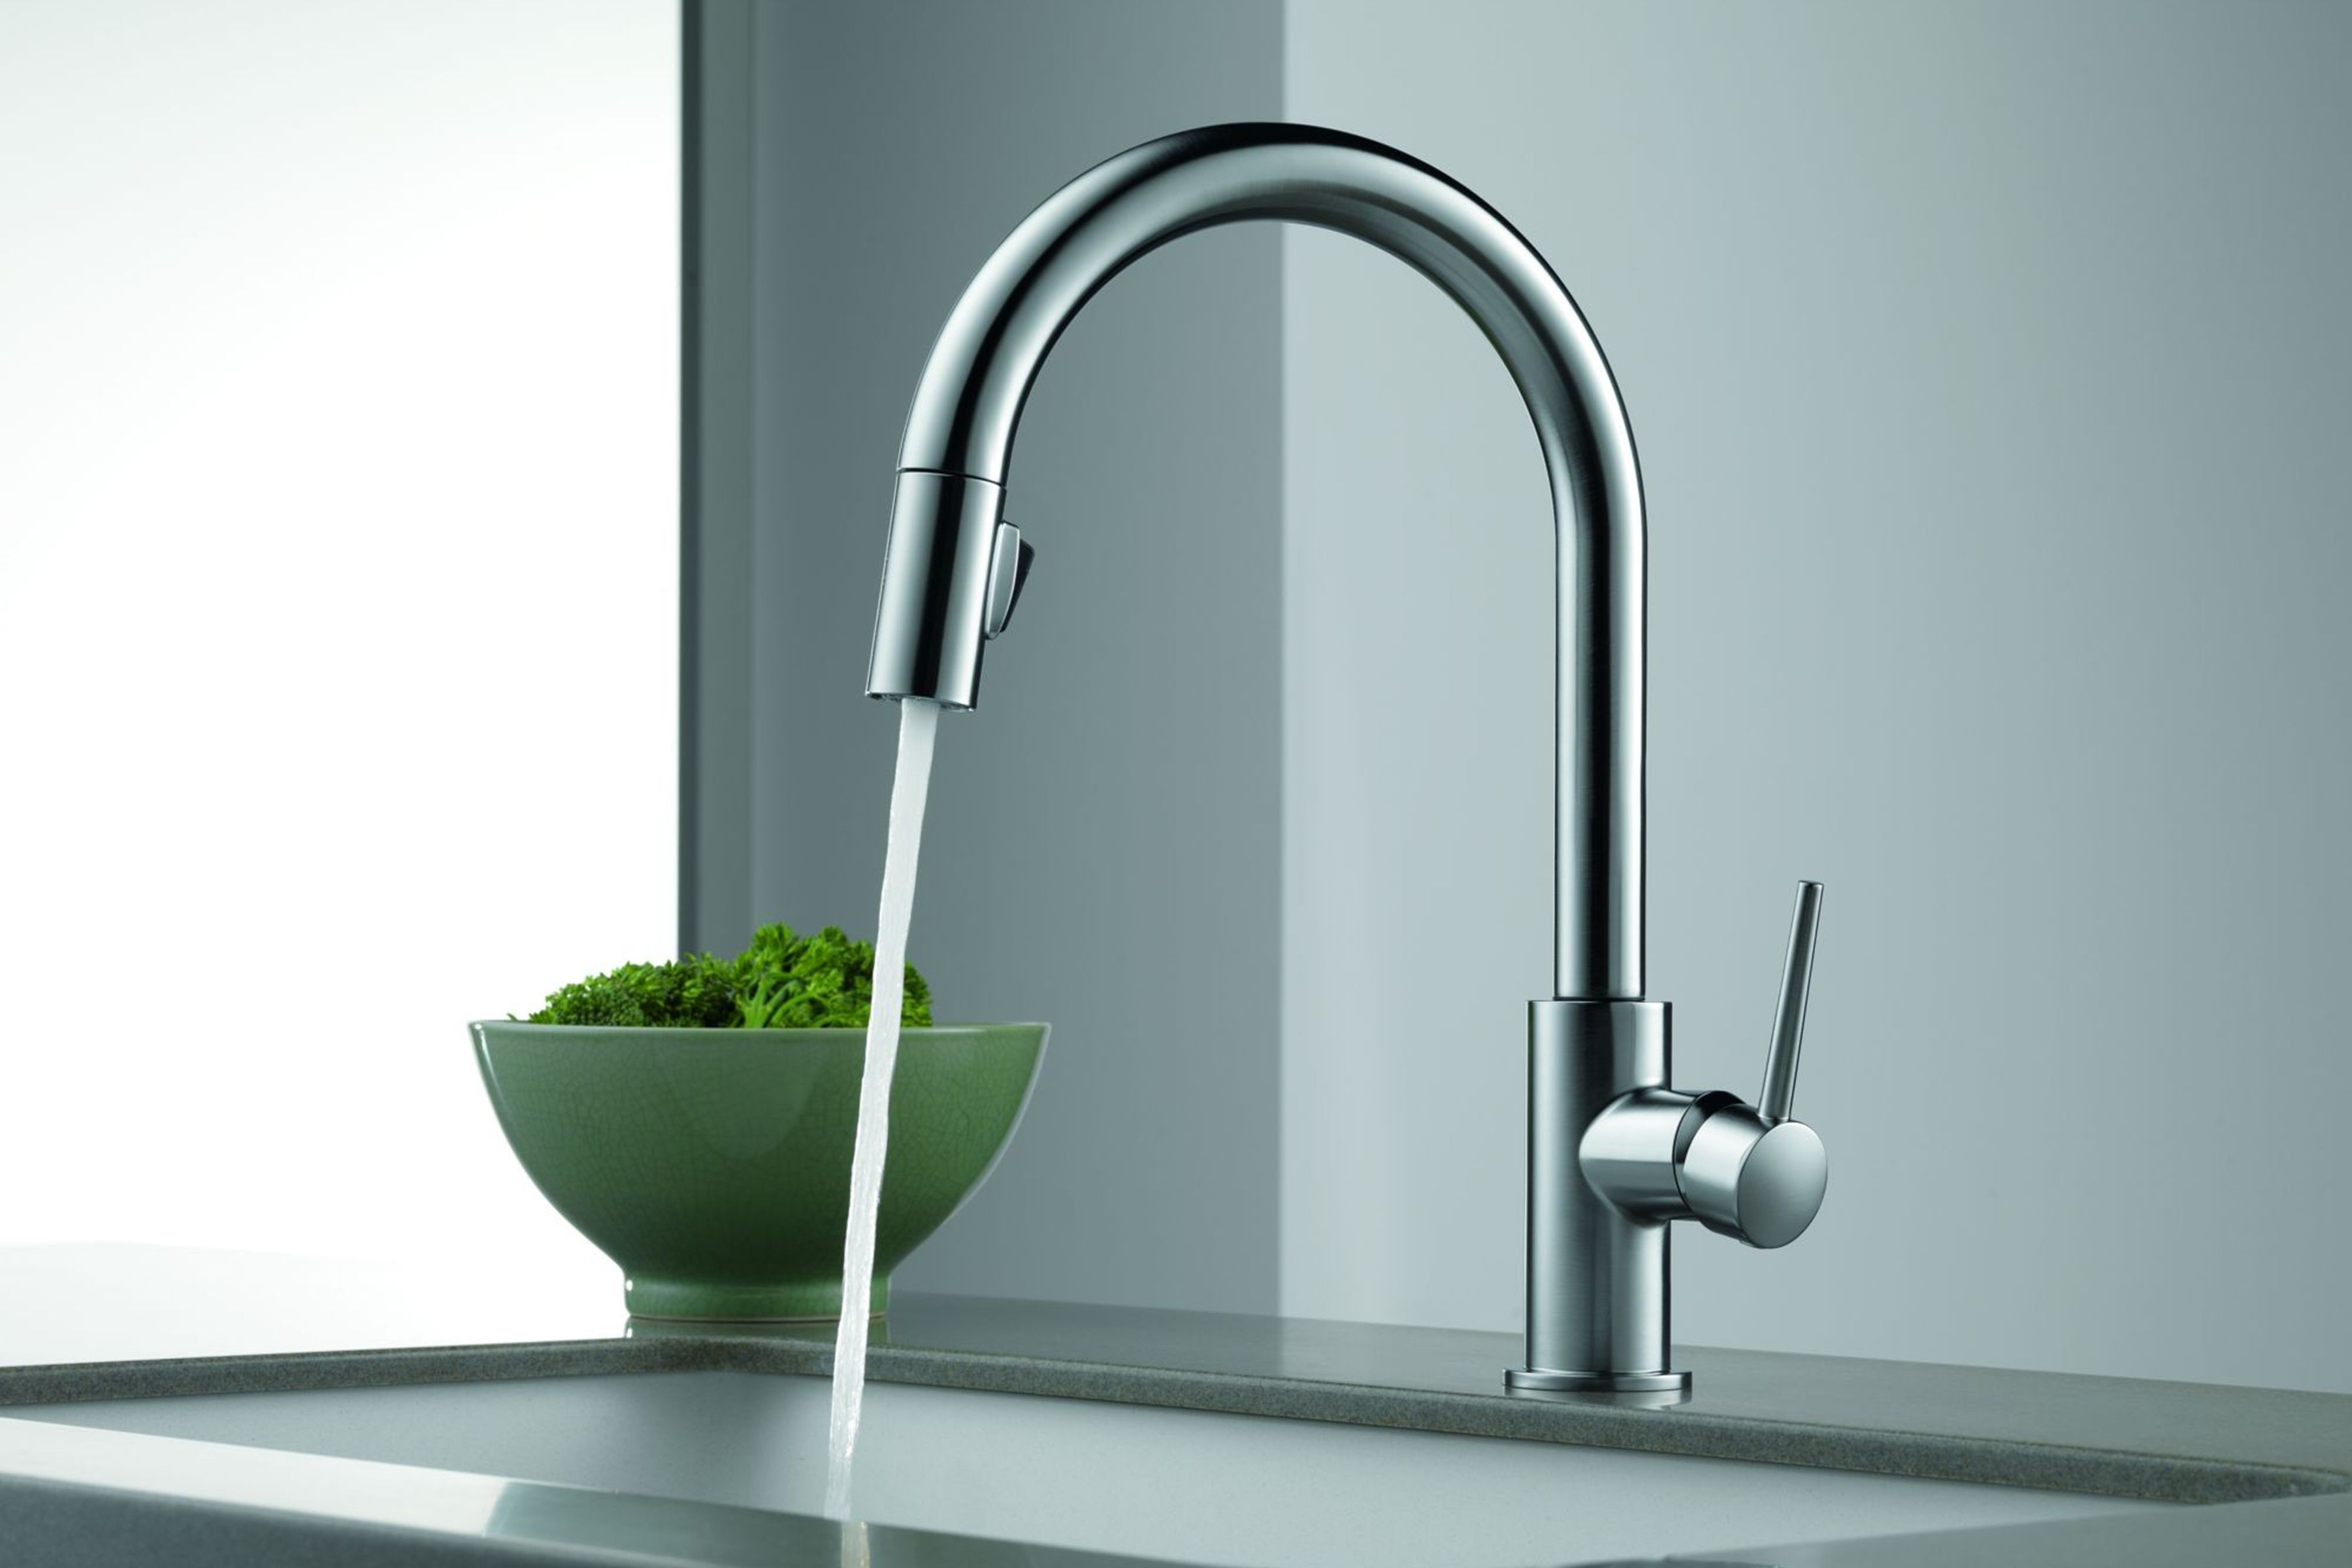 best inexpensive kitchen faucet cabinet sets for sale costco faucets your idea kohler stainless steel farm sink modern